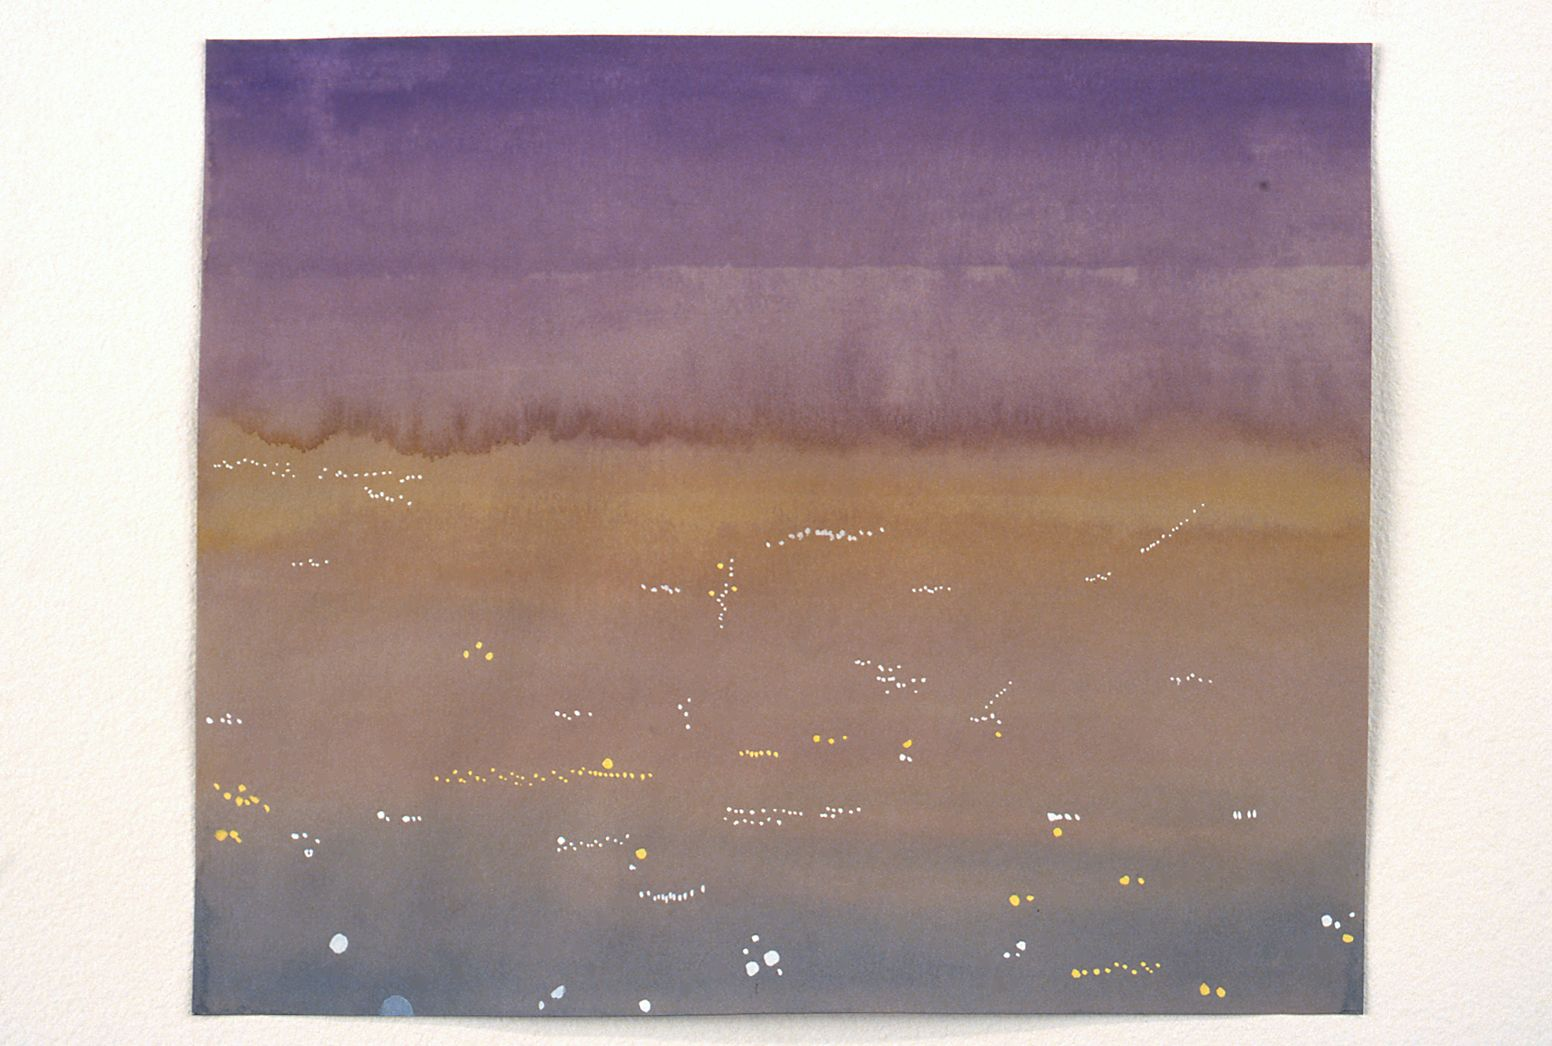 David Korty, Untitled, 2000, watercolor on paper, 8 1/4 x 10 inches